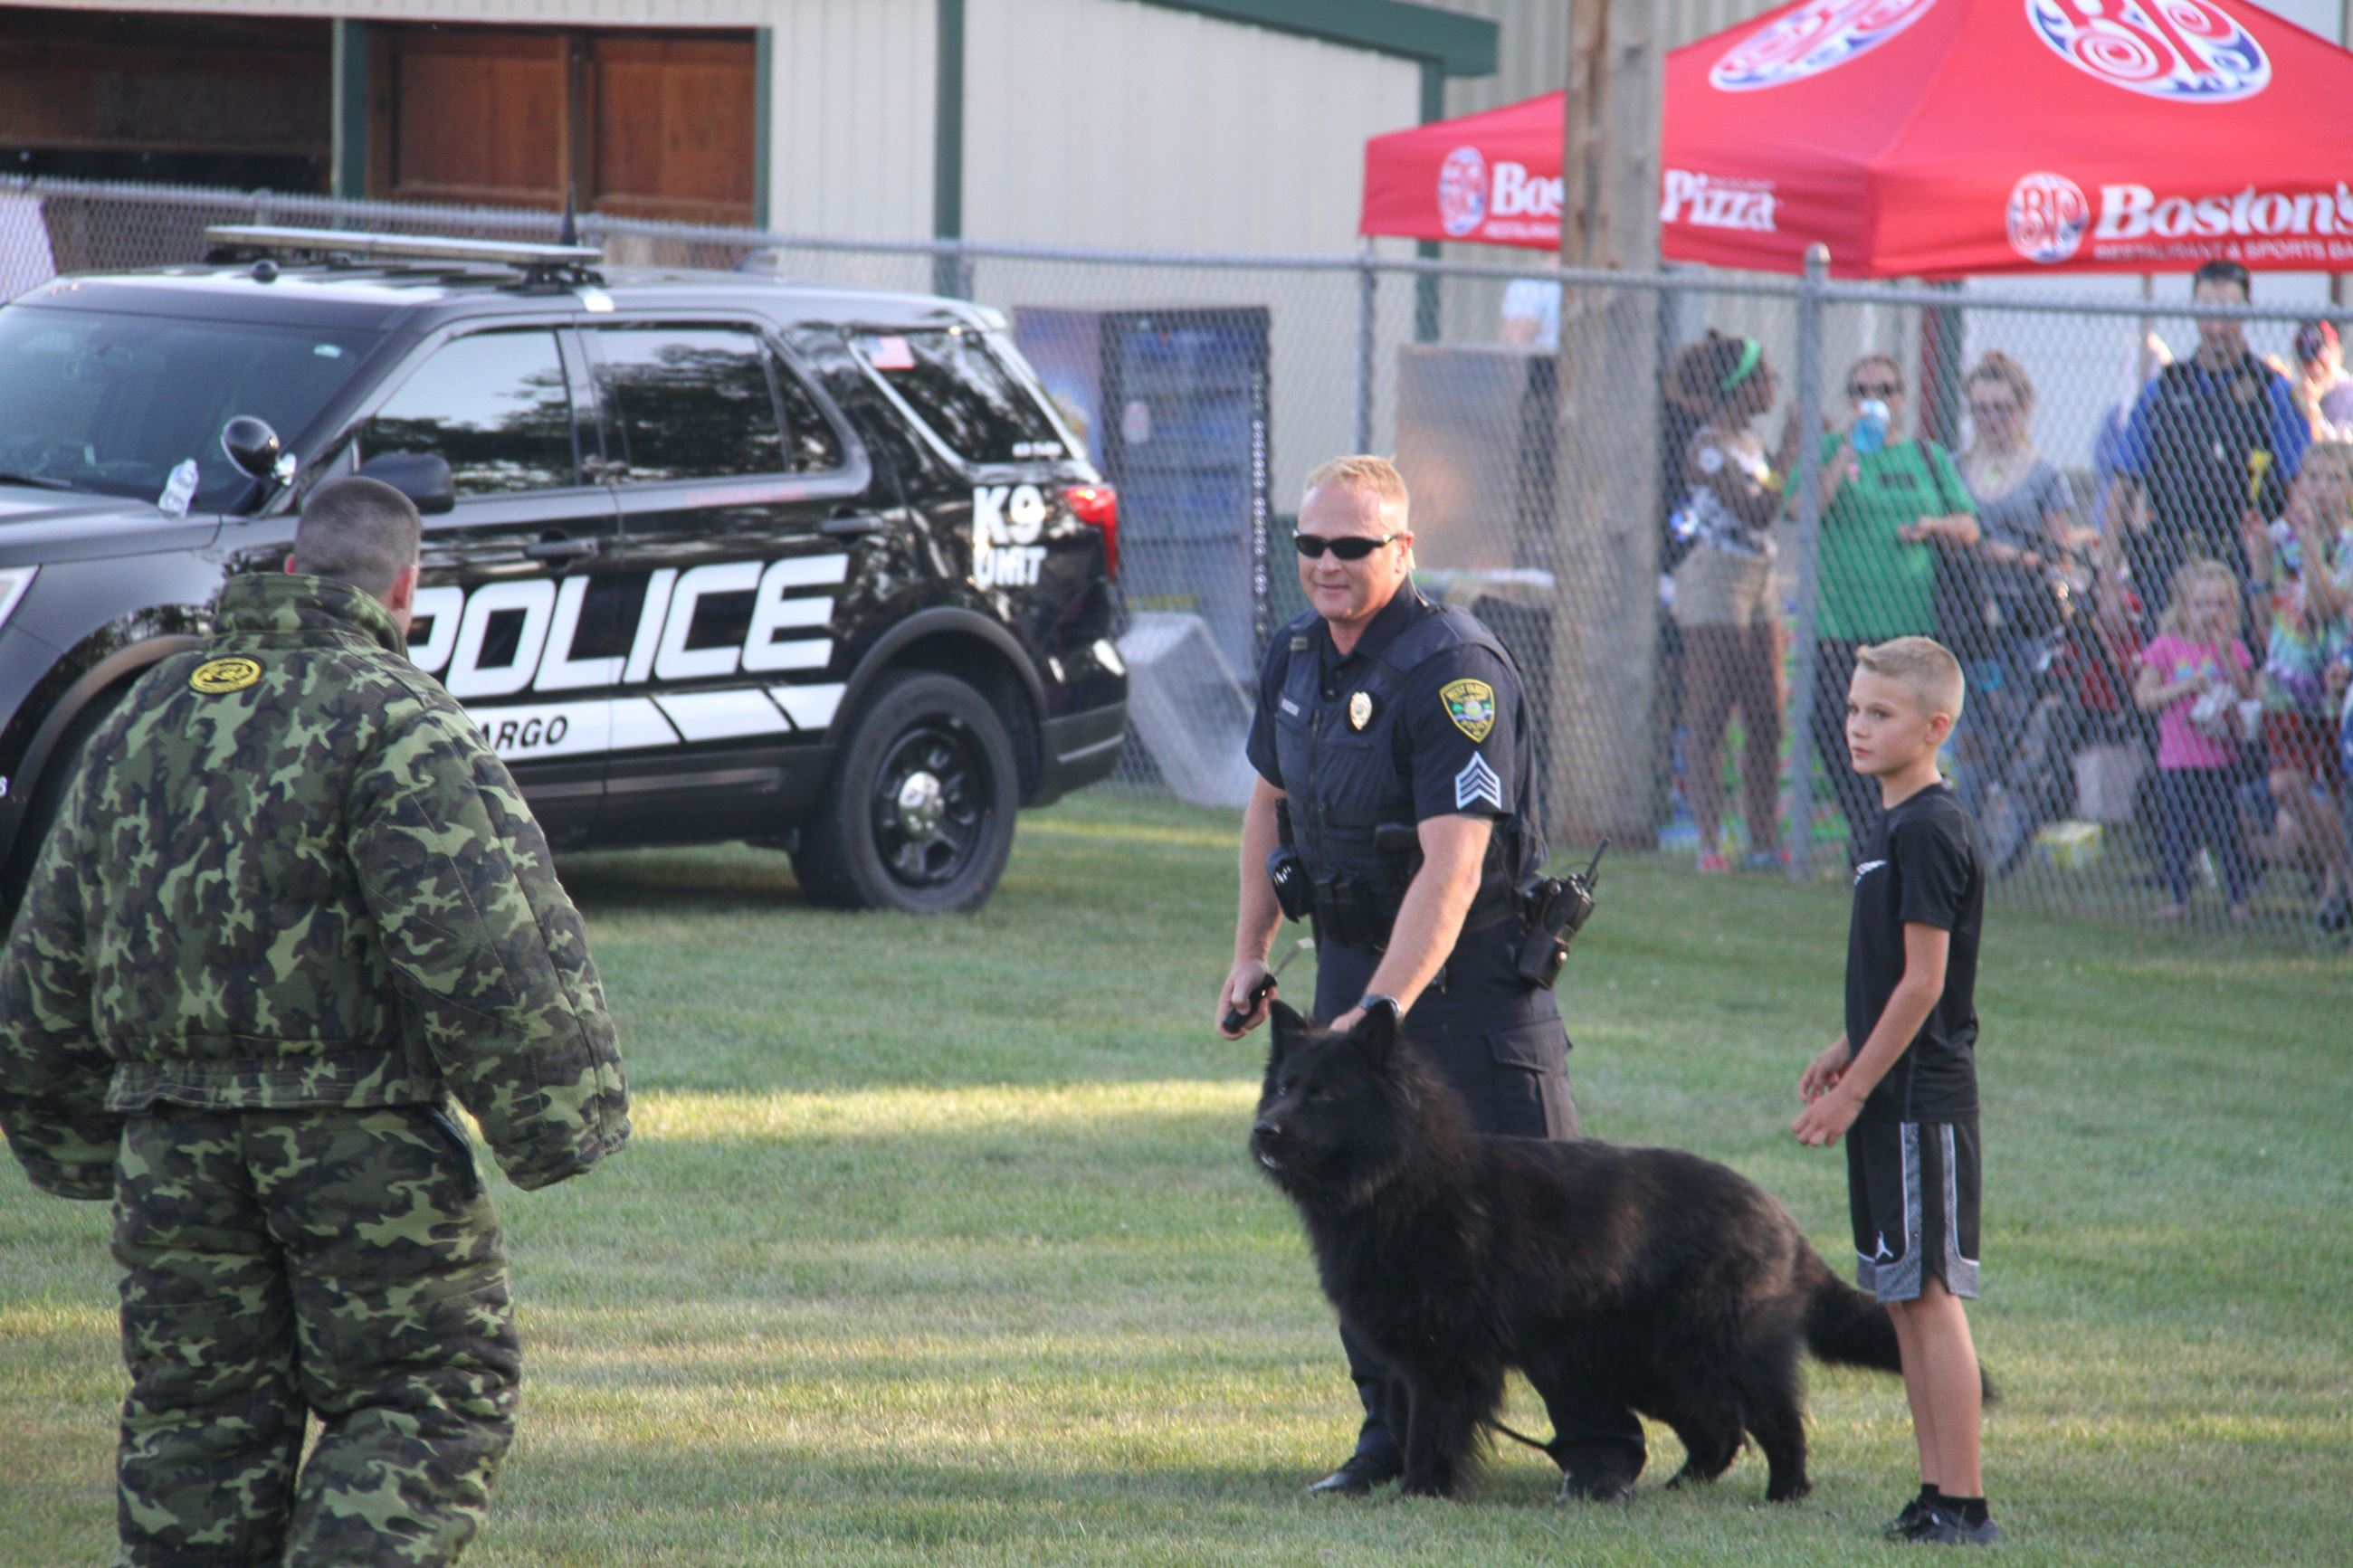 A young West Fargo resident assists Sgt. Nielsen and K9 Disco with a demonstration